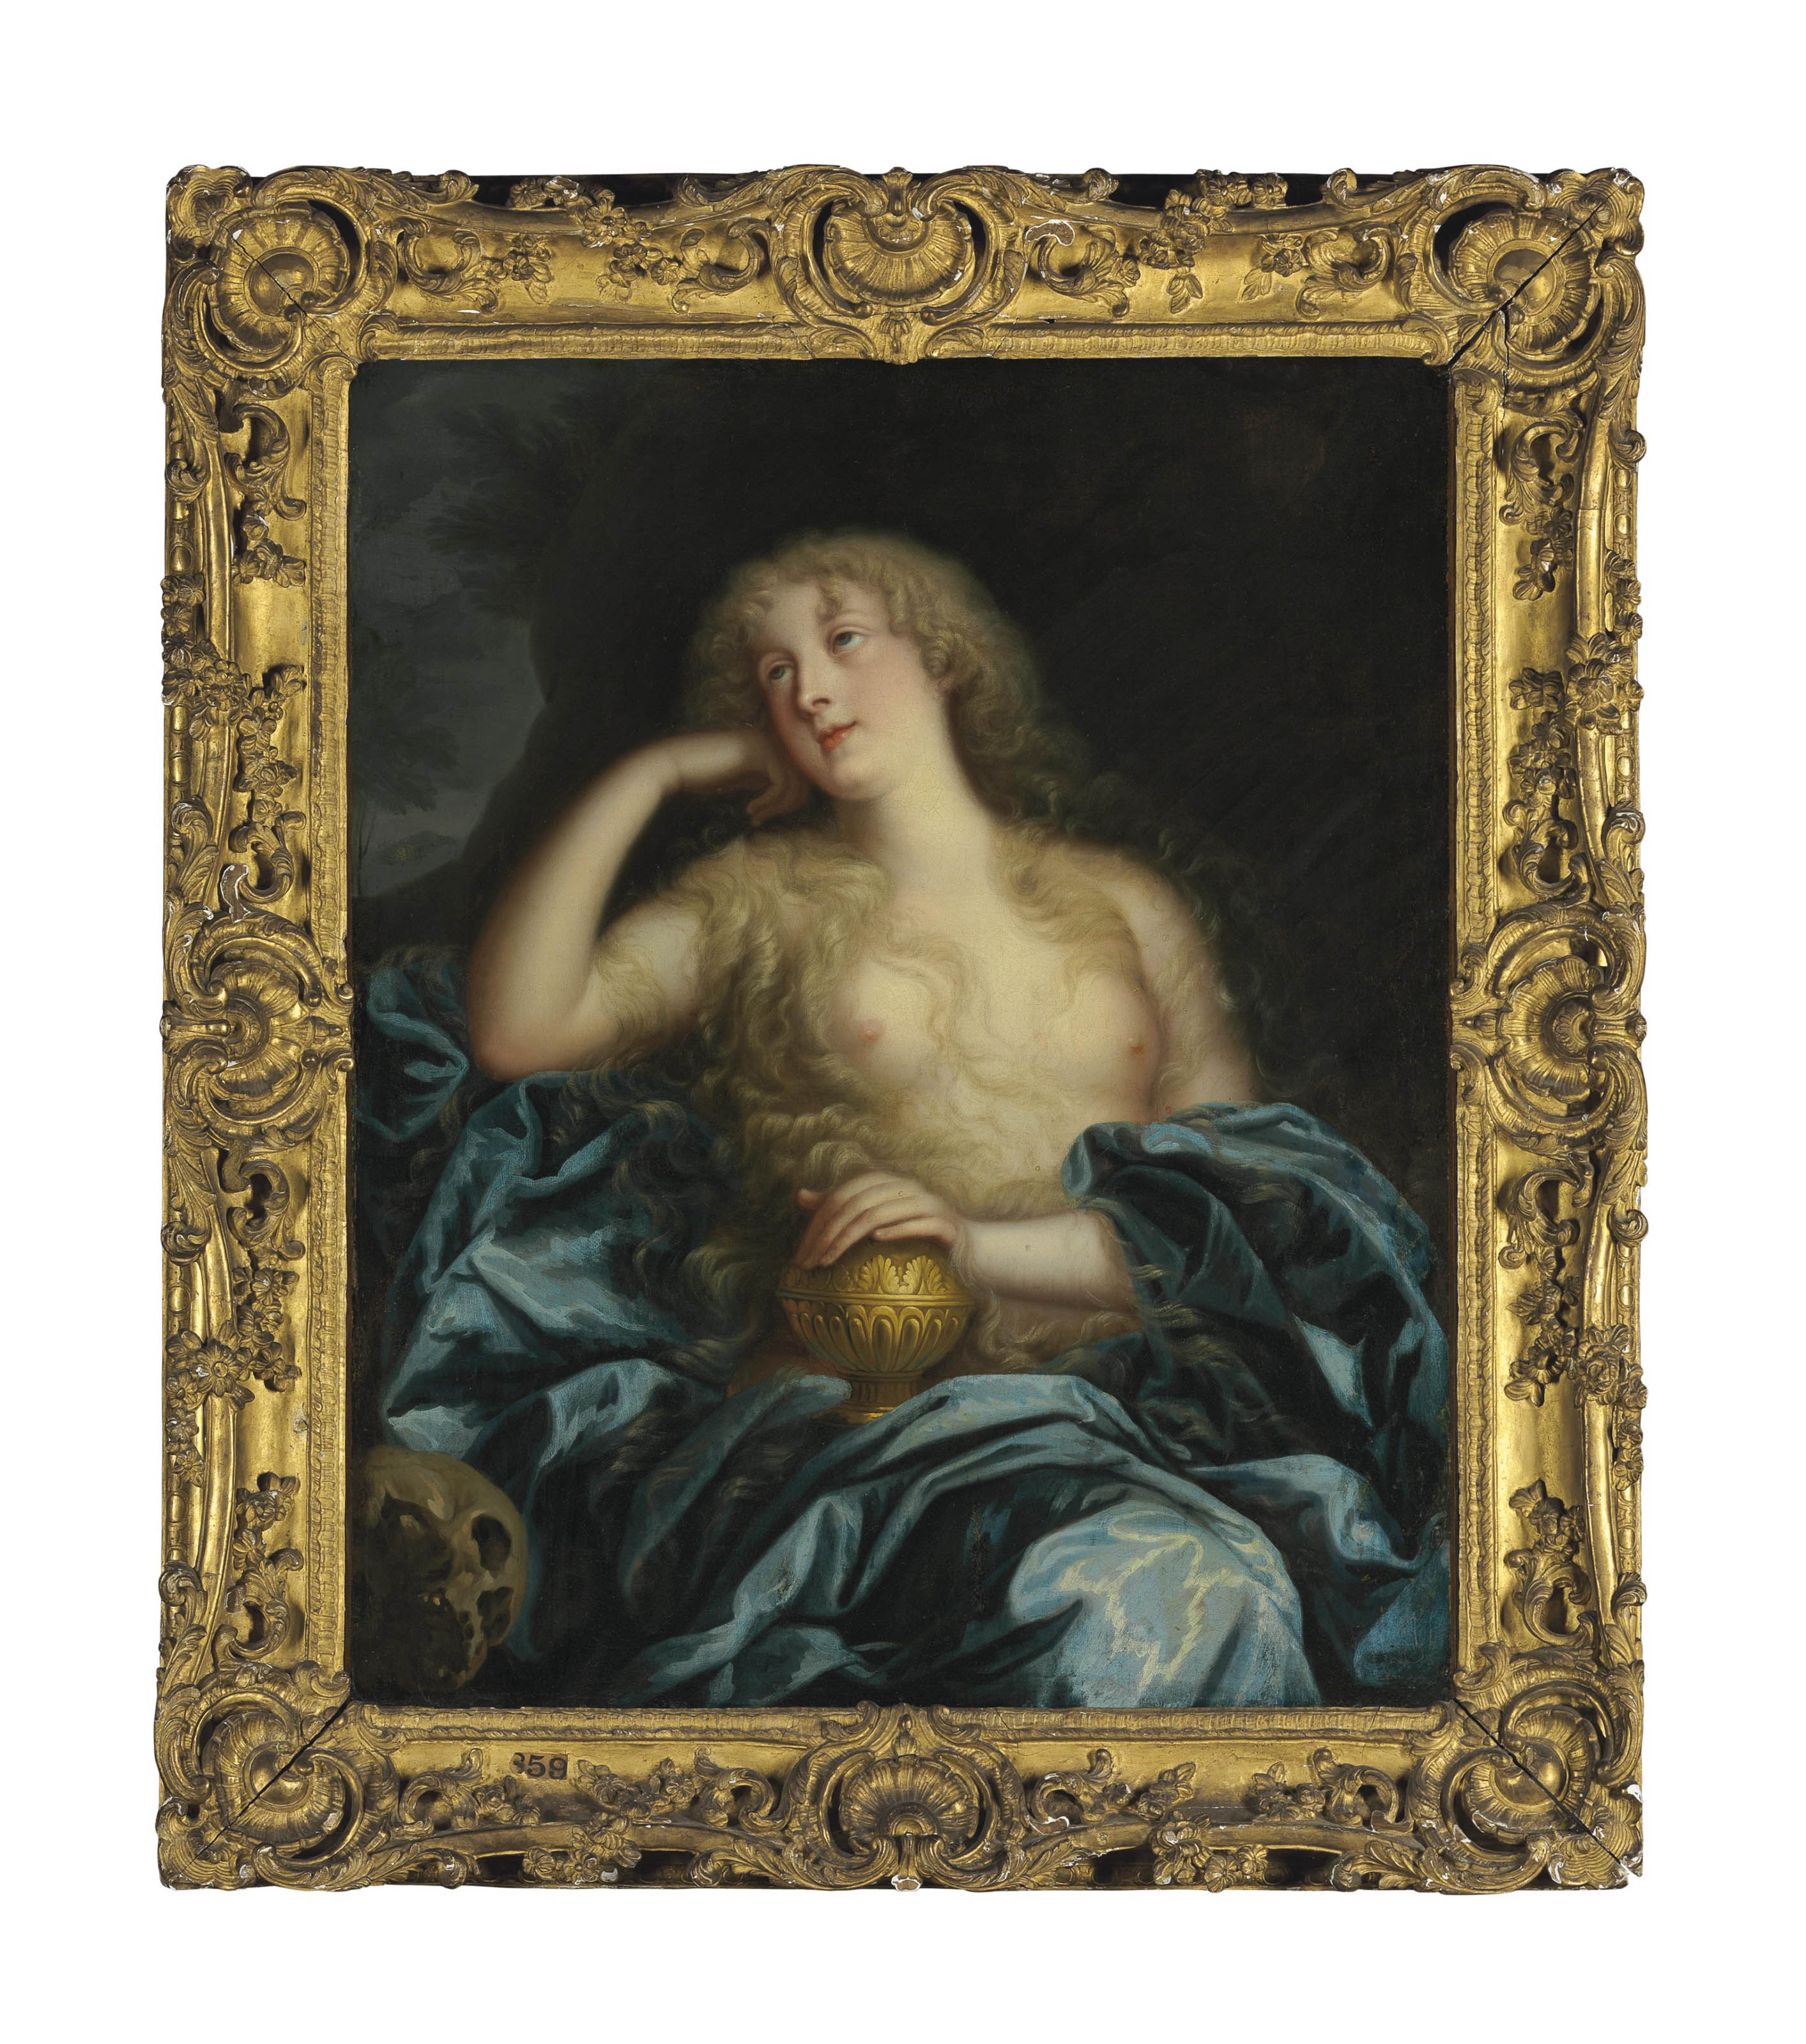 Portrait of a Lady as the Penitent Magdalene